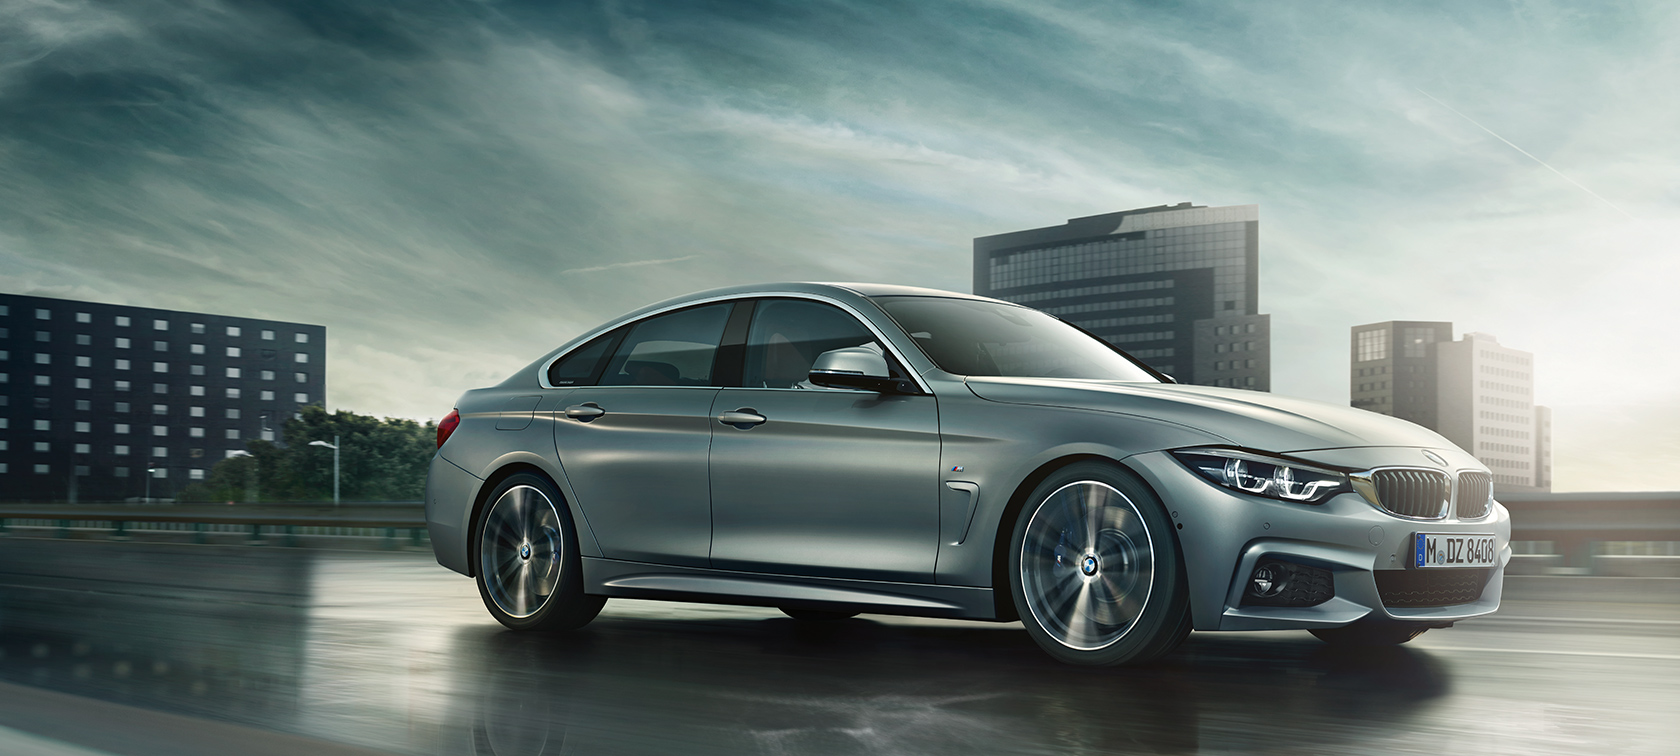 BMW 4-Series Gran Coupe metallic car: streets after rain